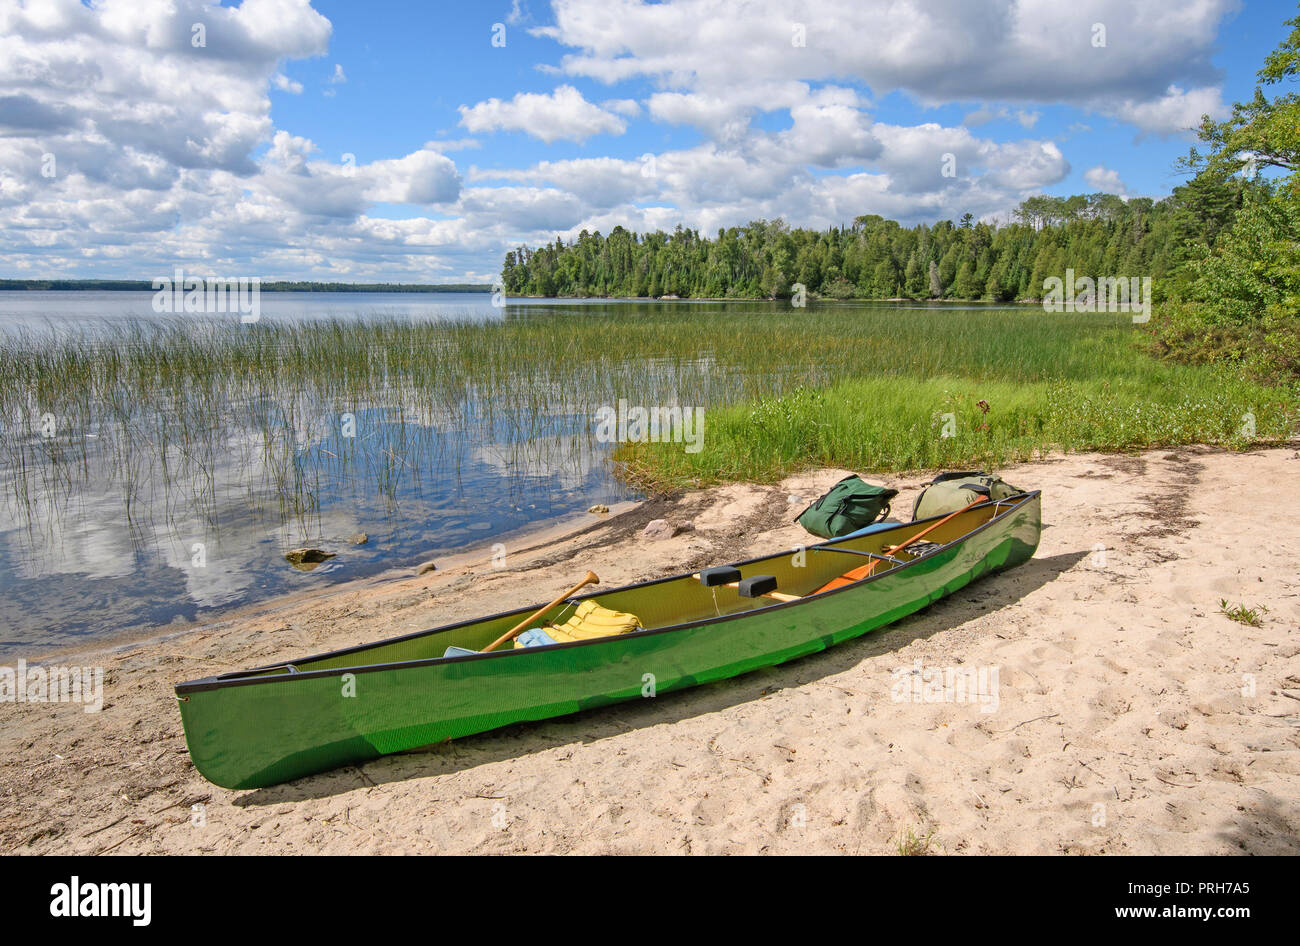 Loading the Canoe on the Shore of Basswood Lake in Quetico Provincila Park in Ontario - Stock Image